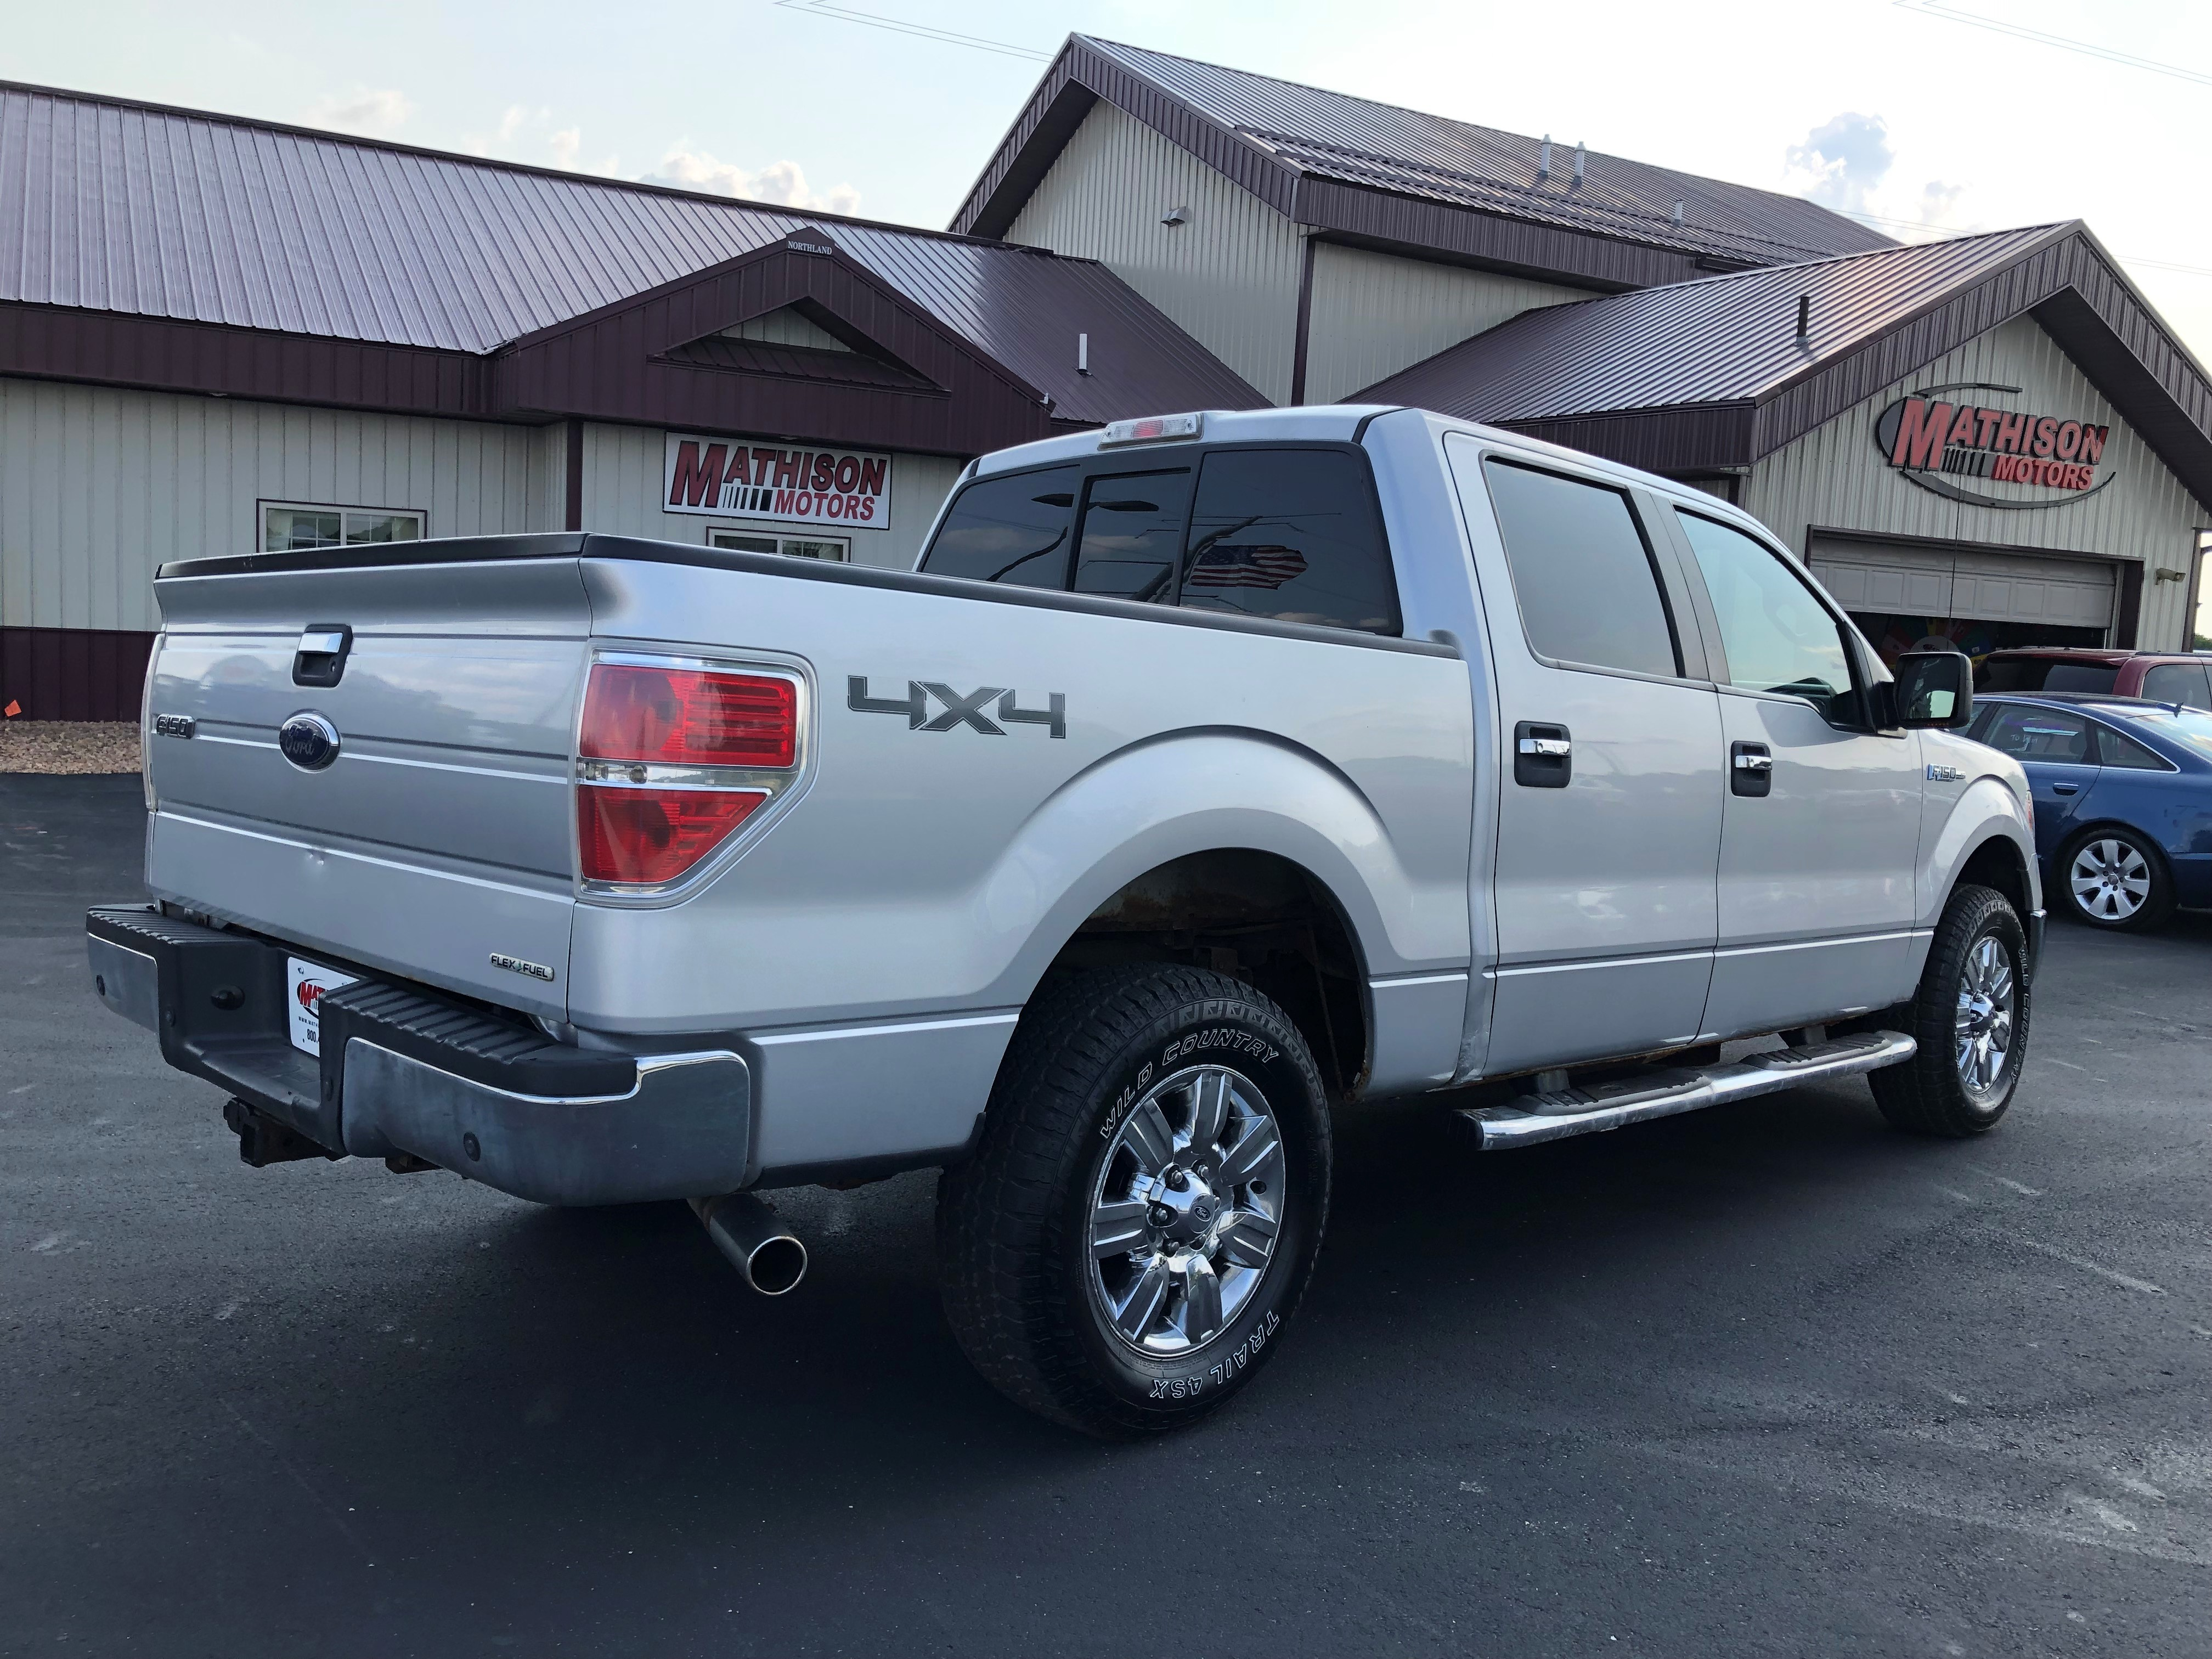 used vehicle - Truck FORD F-150 2011